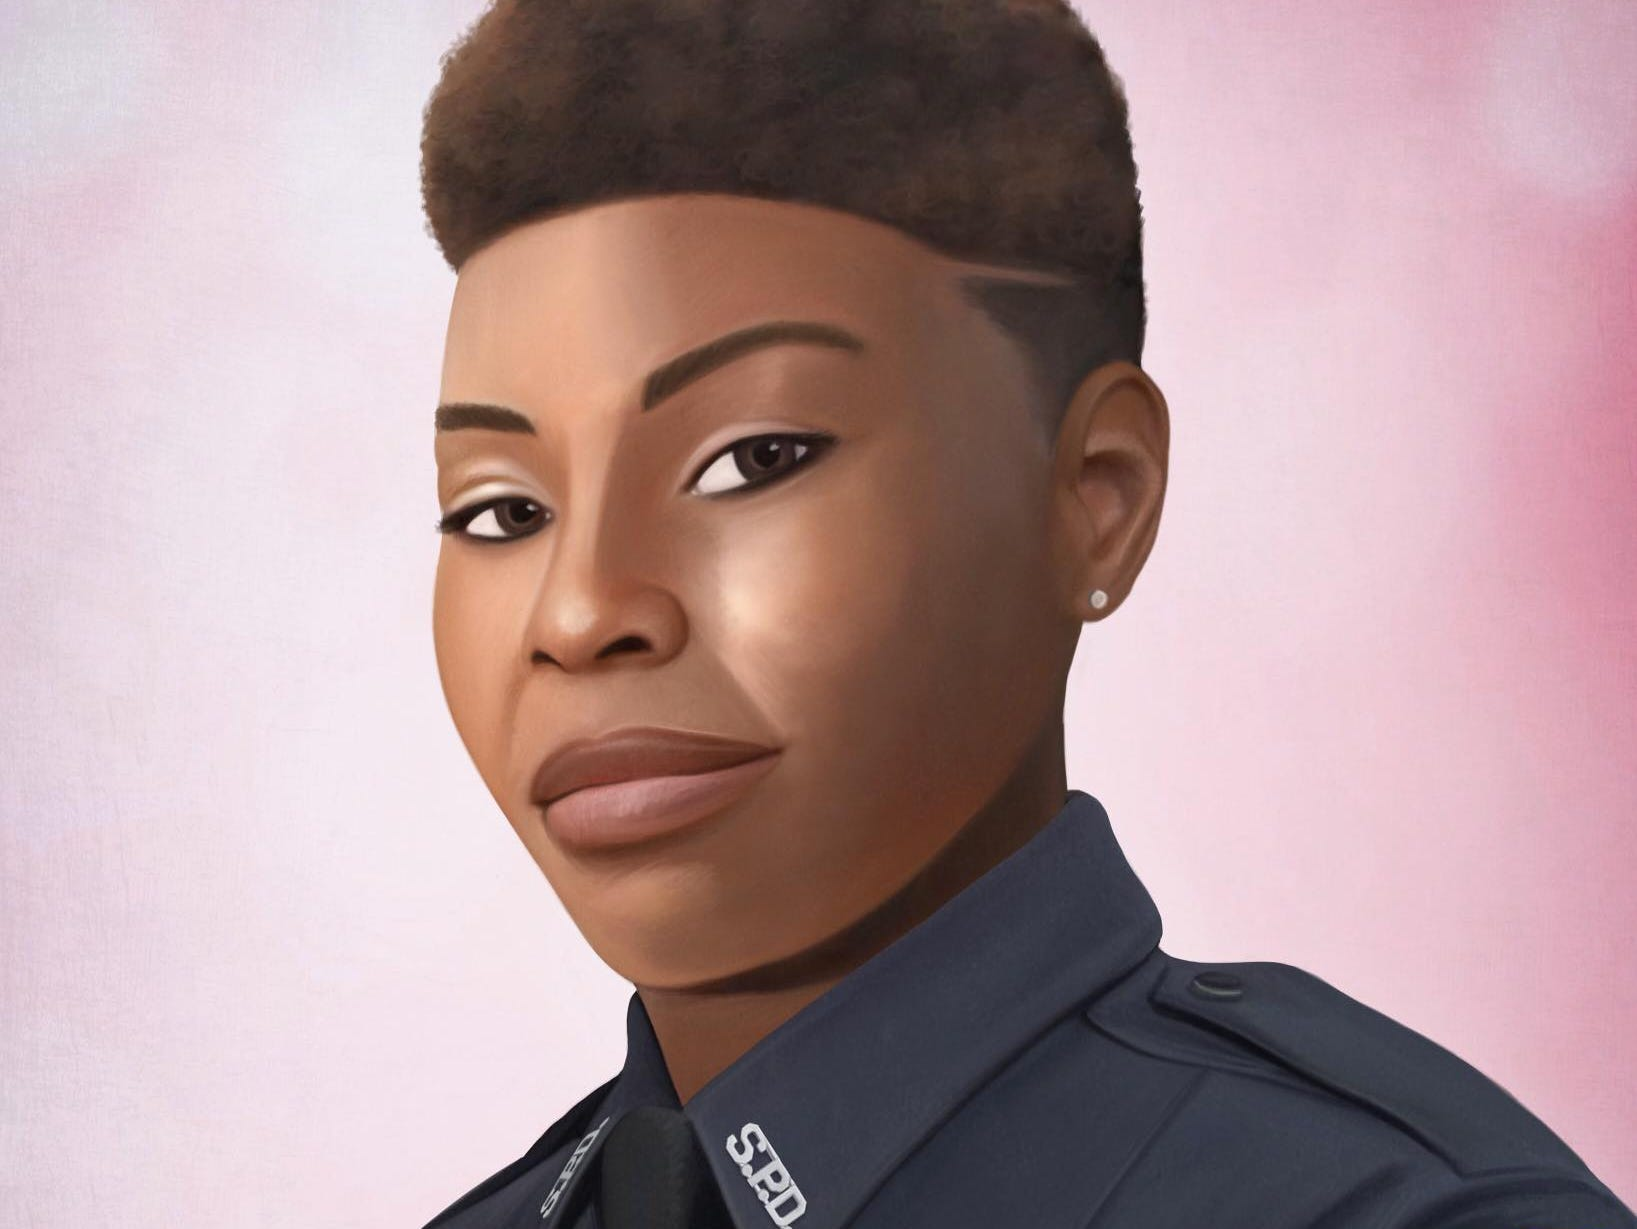 This is a portrait of Shreveport Louisiana Police Officer Chateri Payne.Painting by Jonny Castro Art